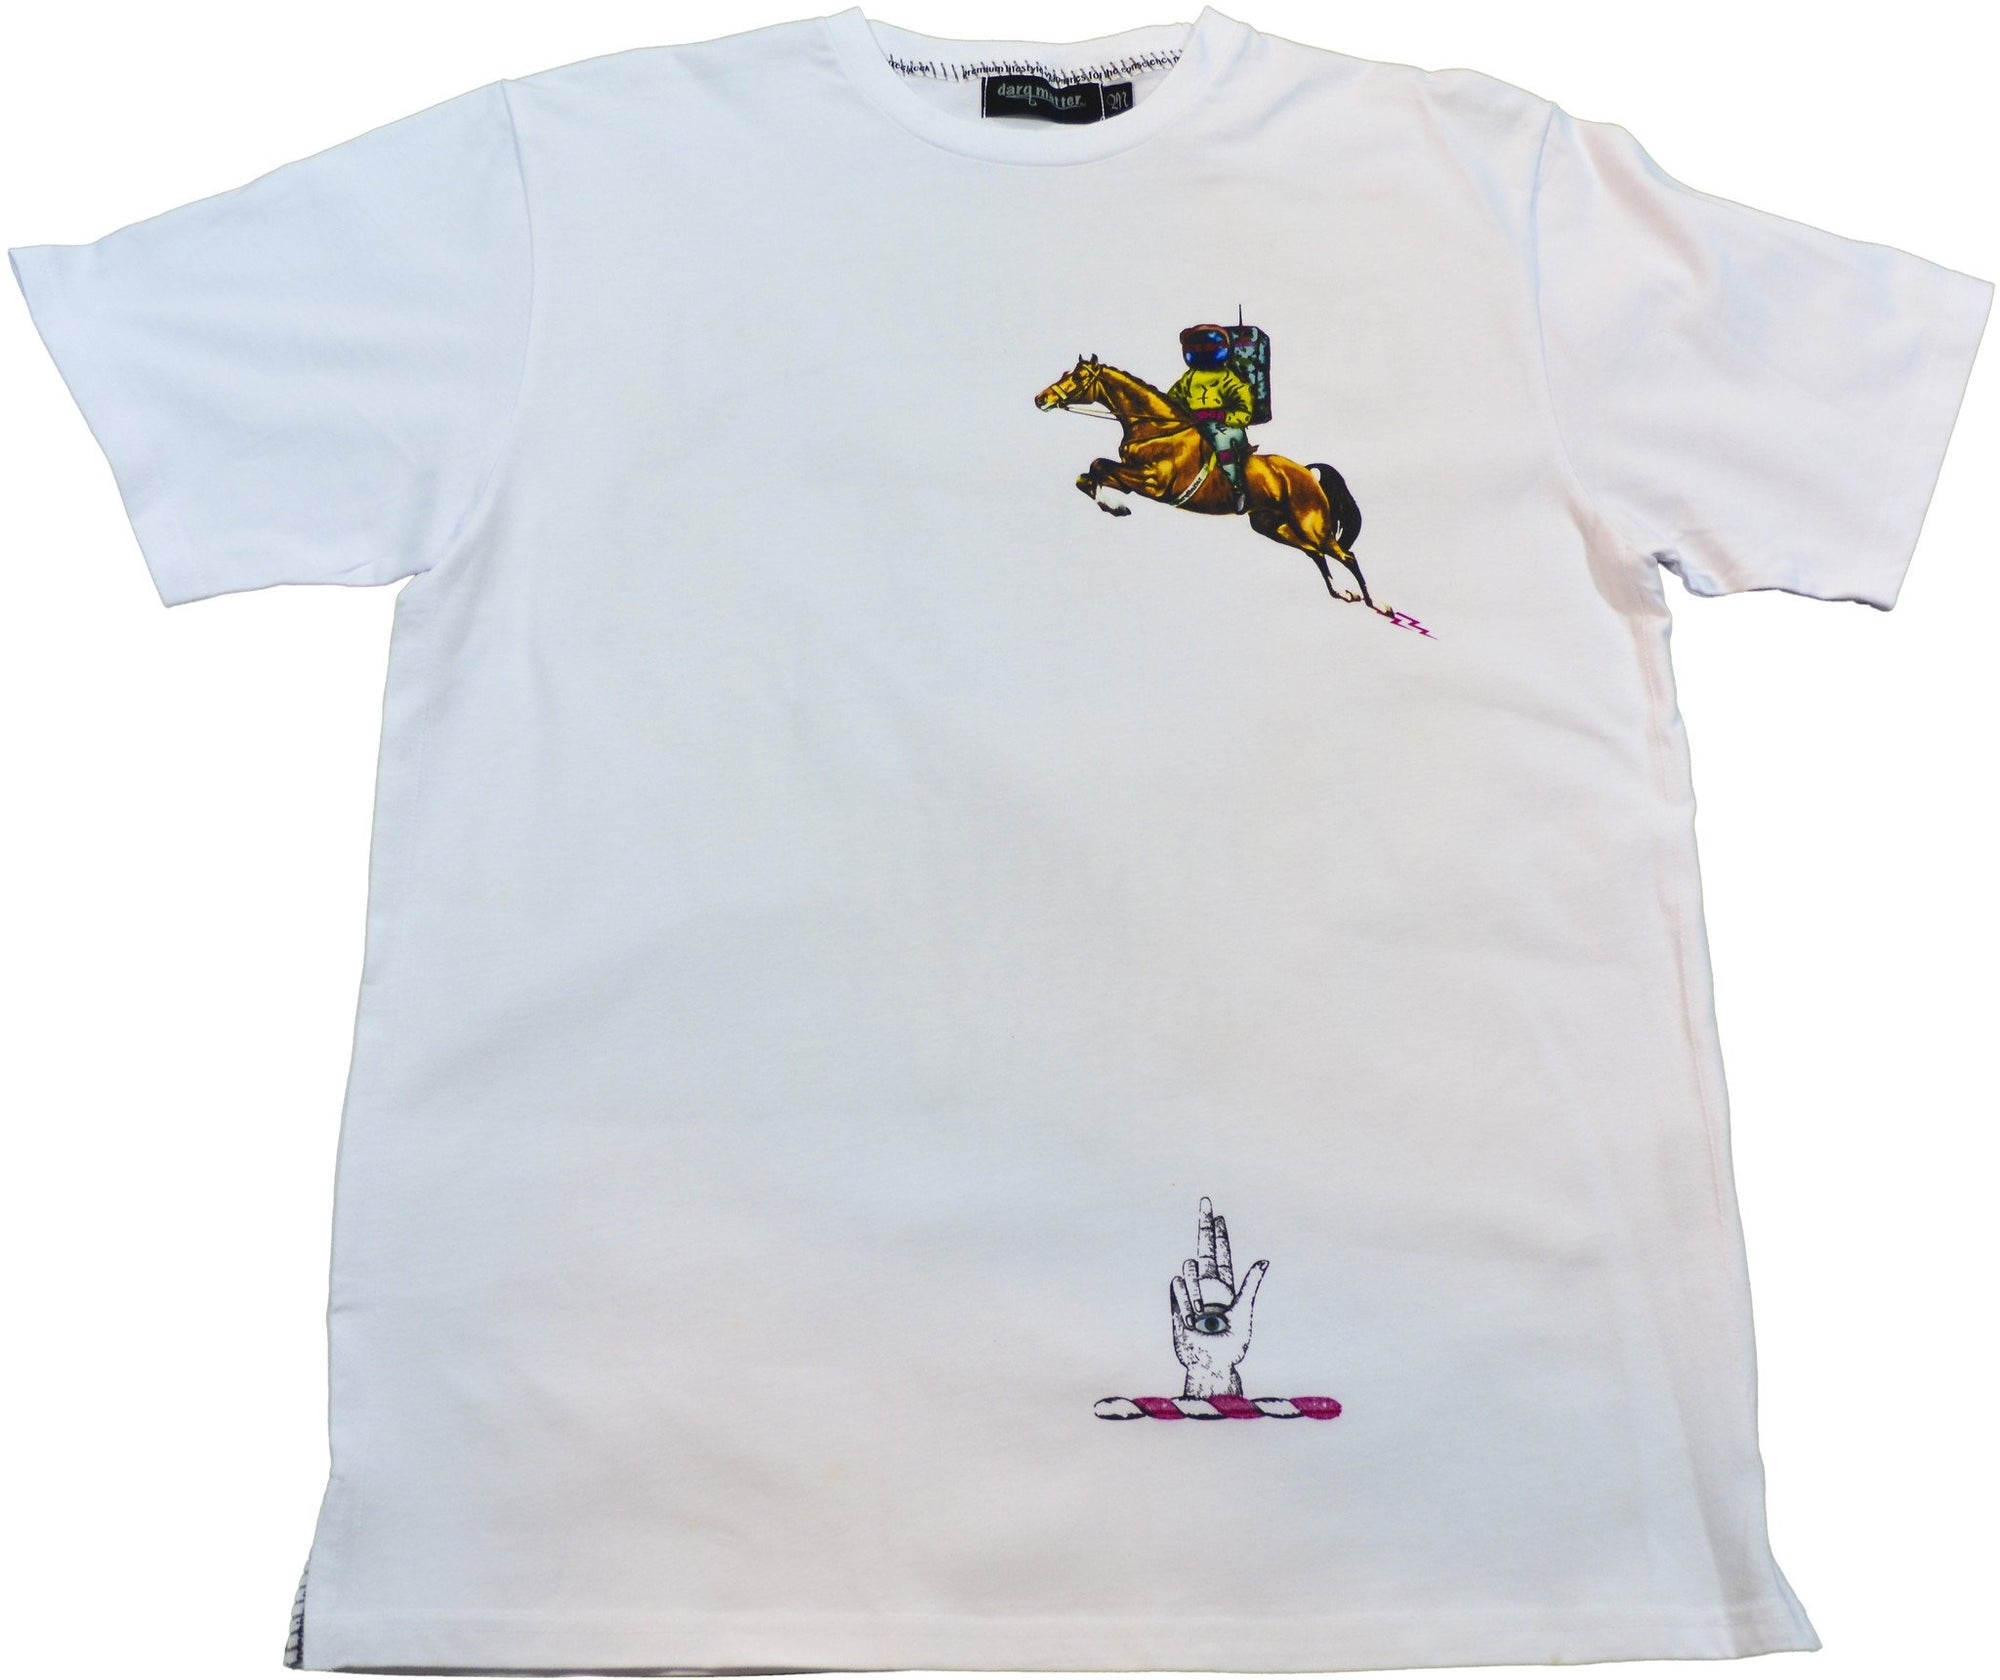 DarqMatterDesign CutnSew T-Shirts Small / White ThoroughBred